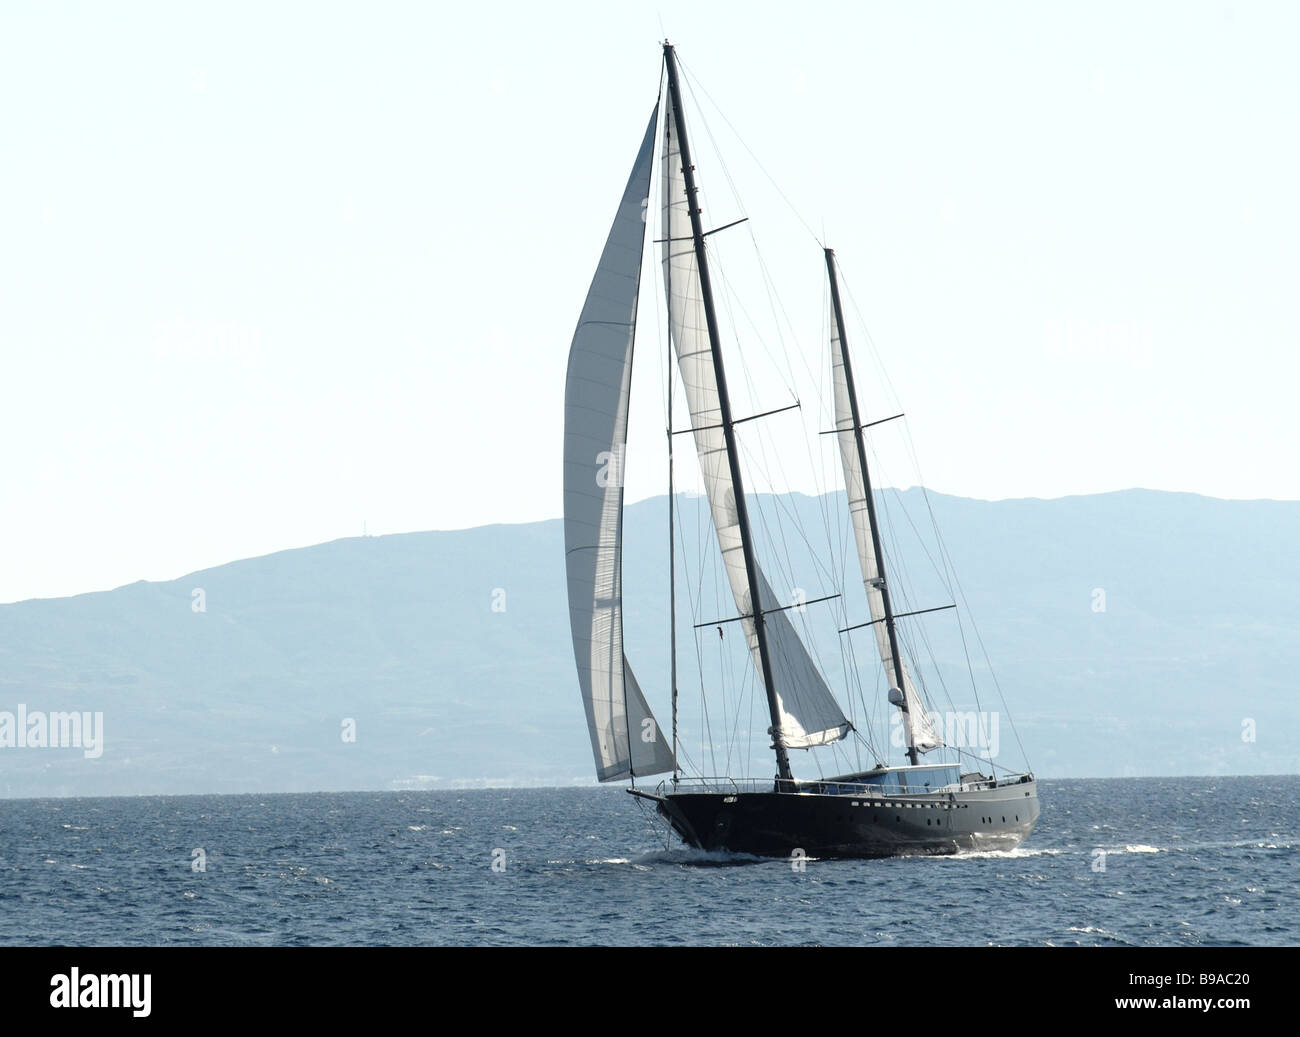 luxury sail boat - Stock Image